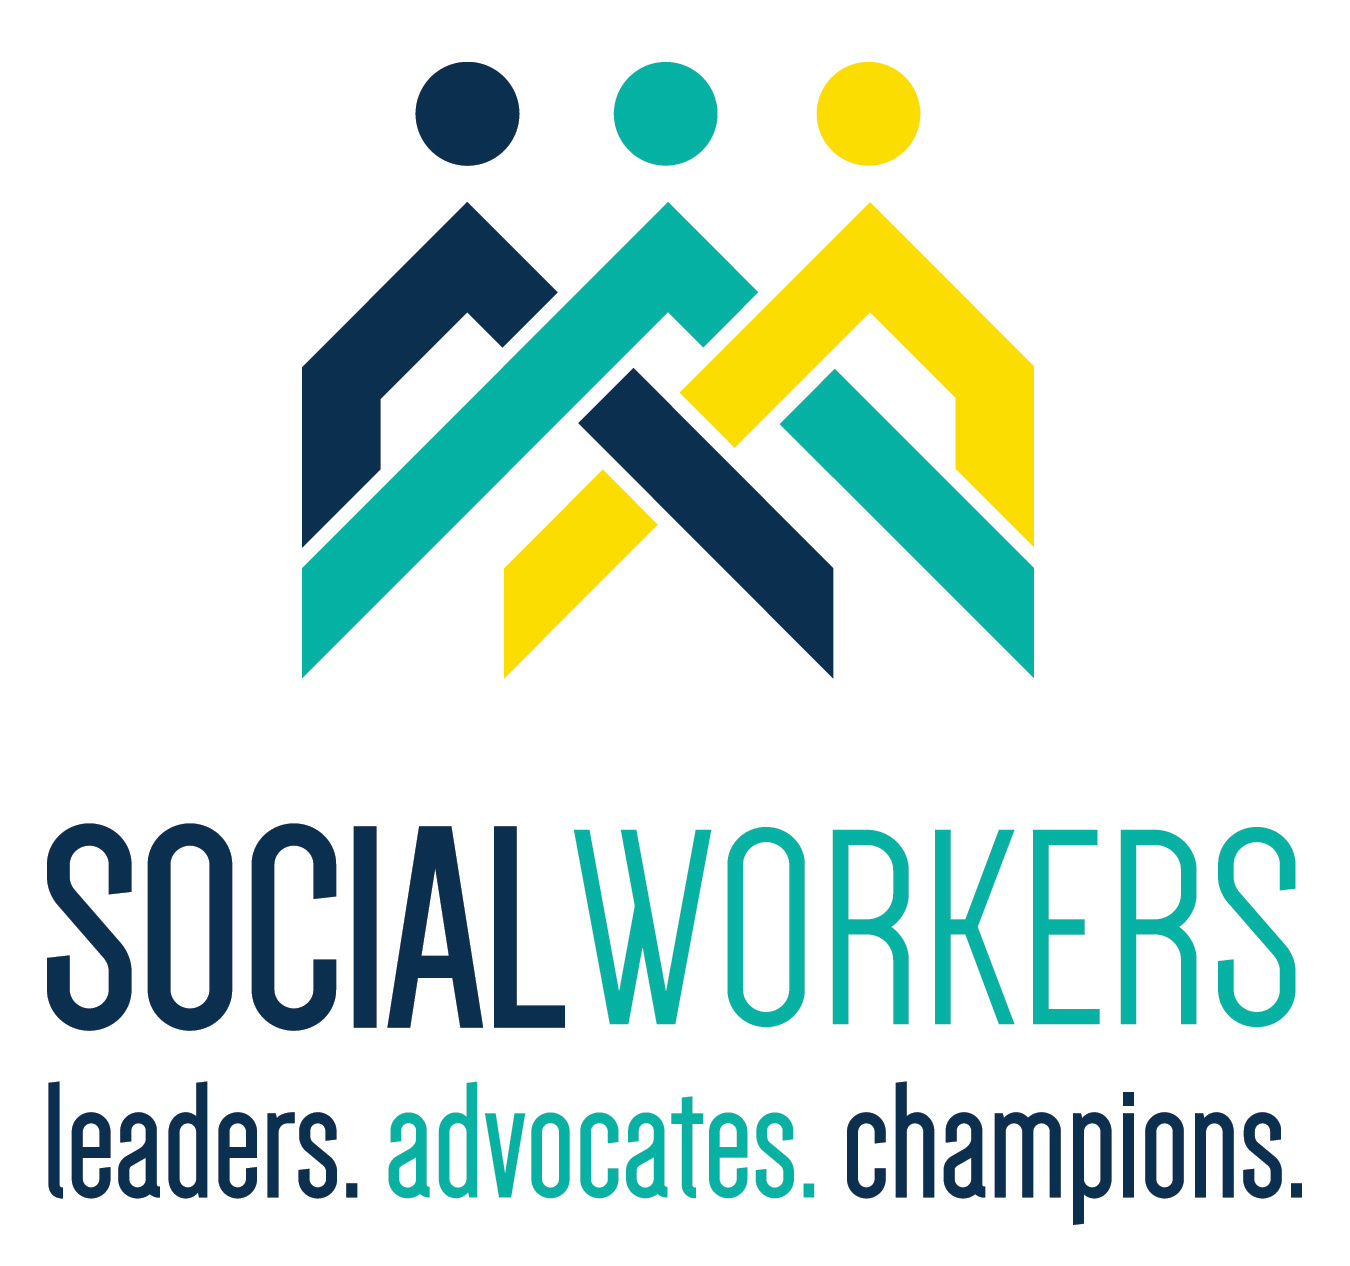 In March we honor our Social Workers